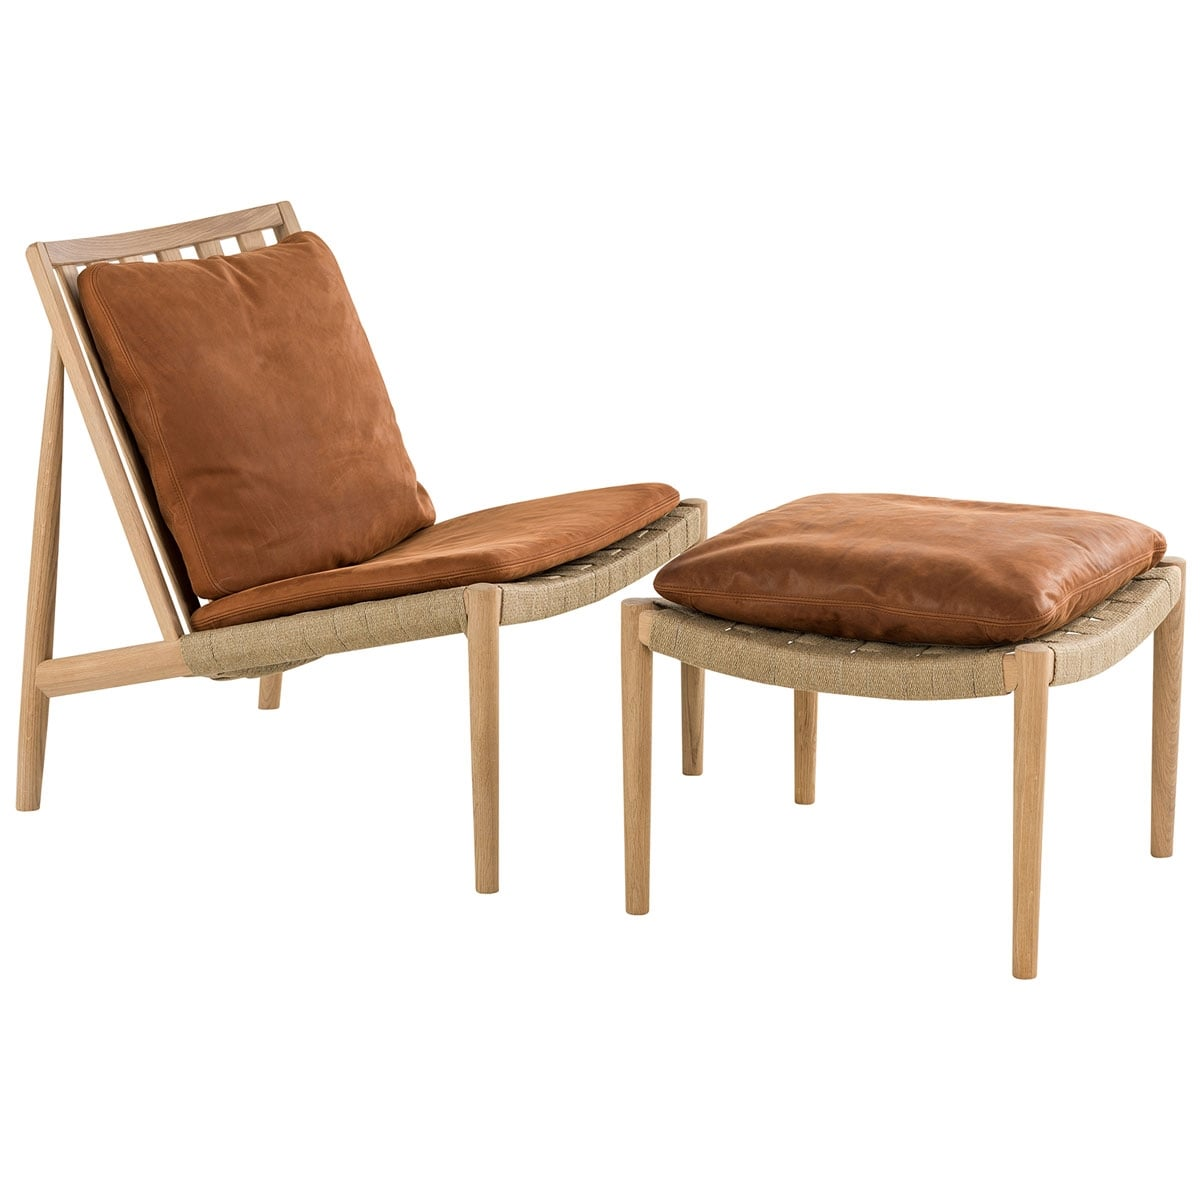 Easy Chair Fotpall Ek vitolja Skinn Dunes rust